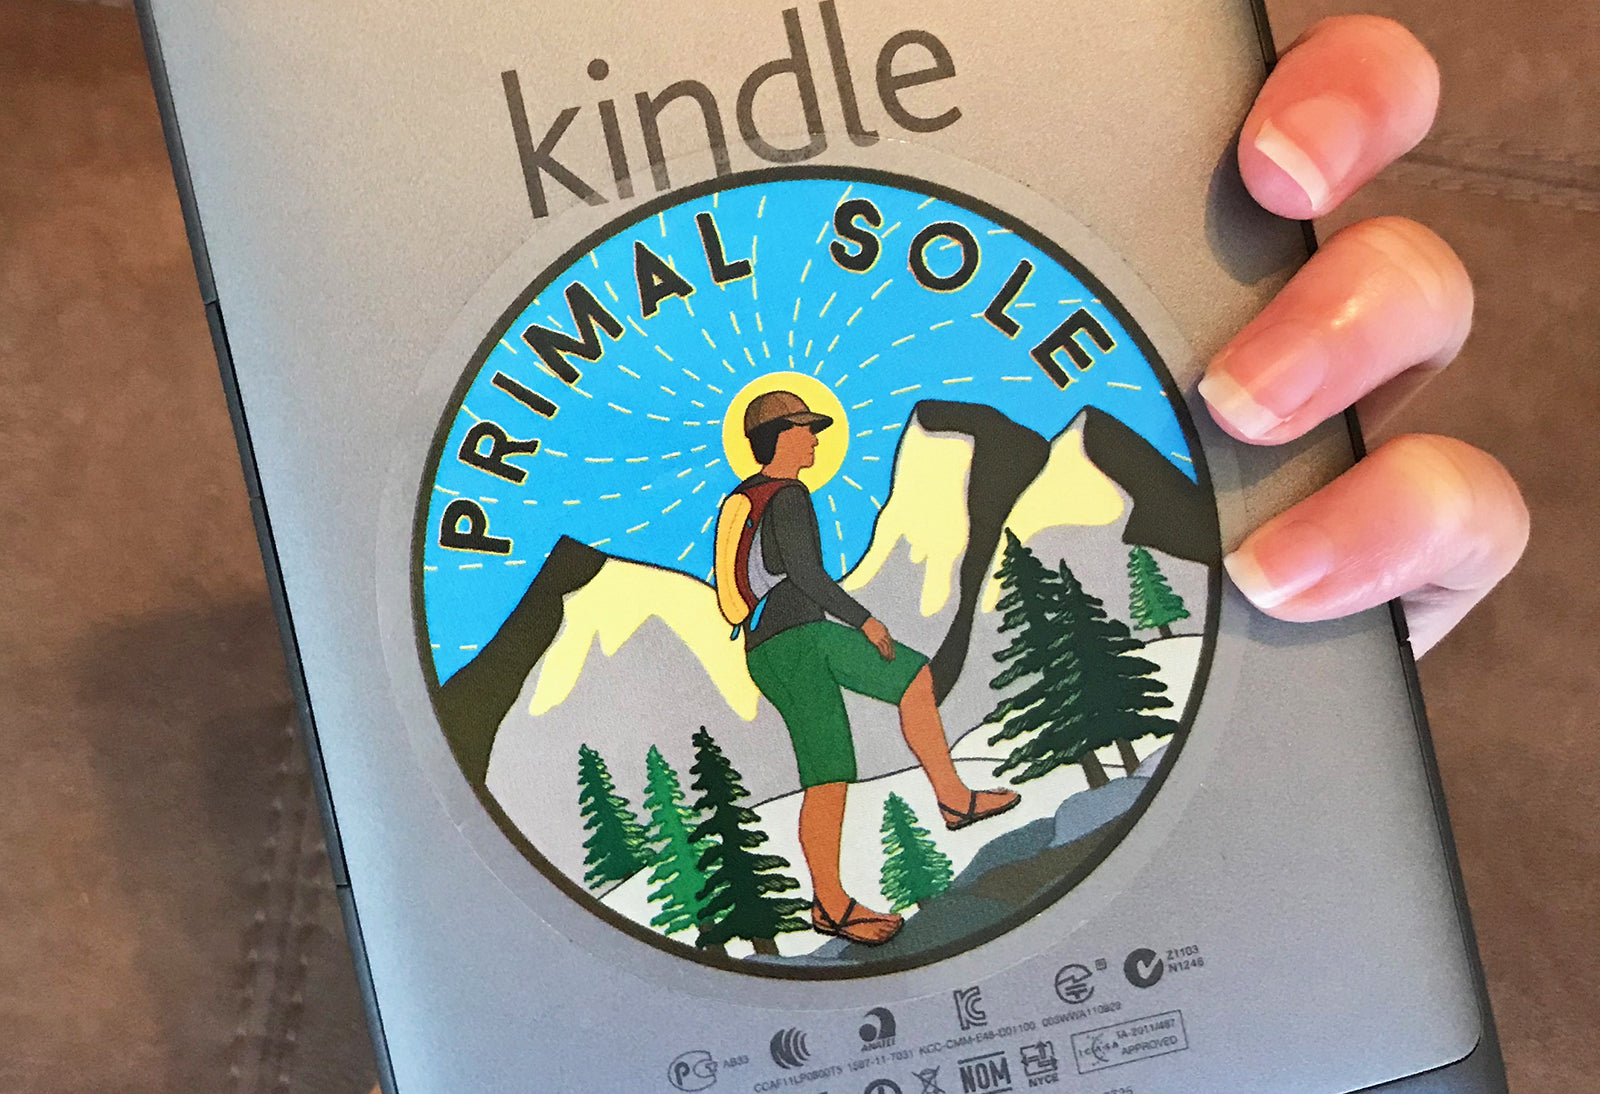 primal sole hiker sticker